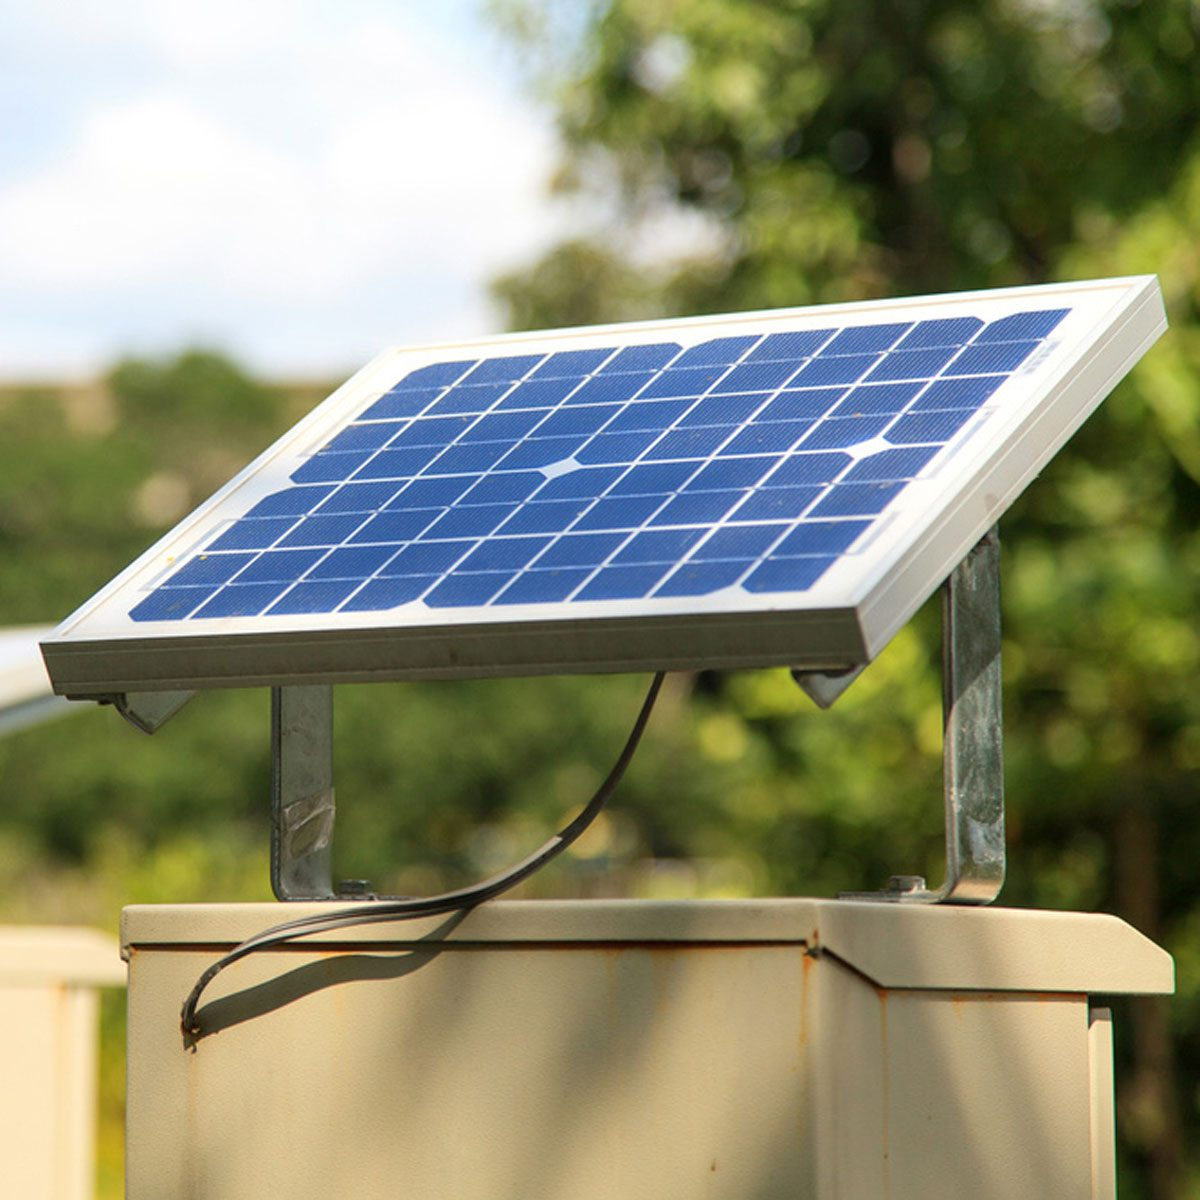 Solar-Powered Shed